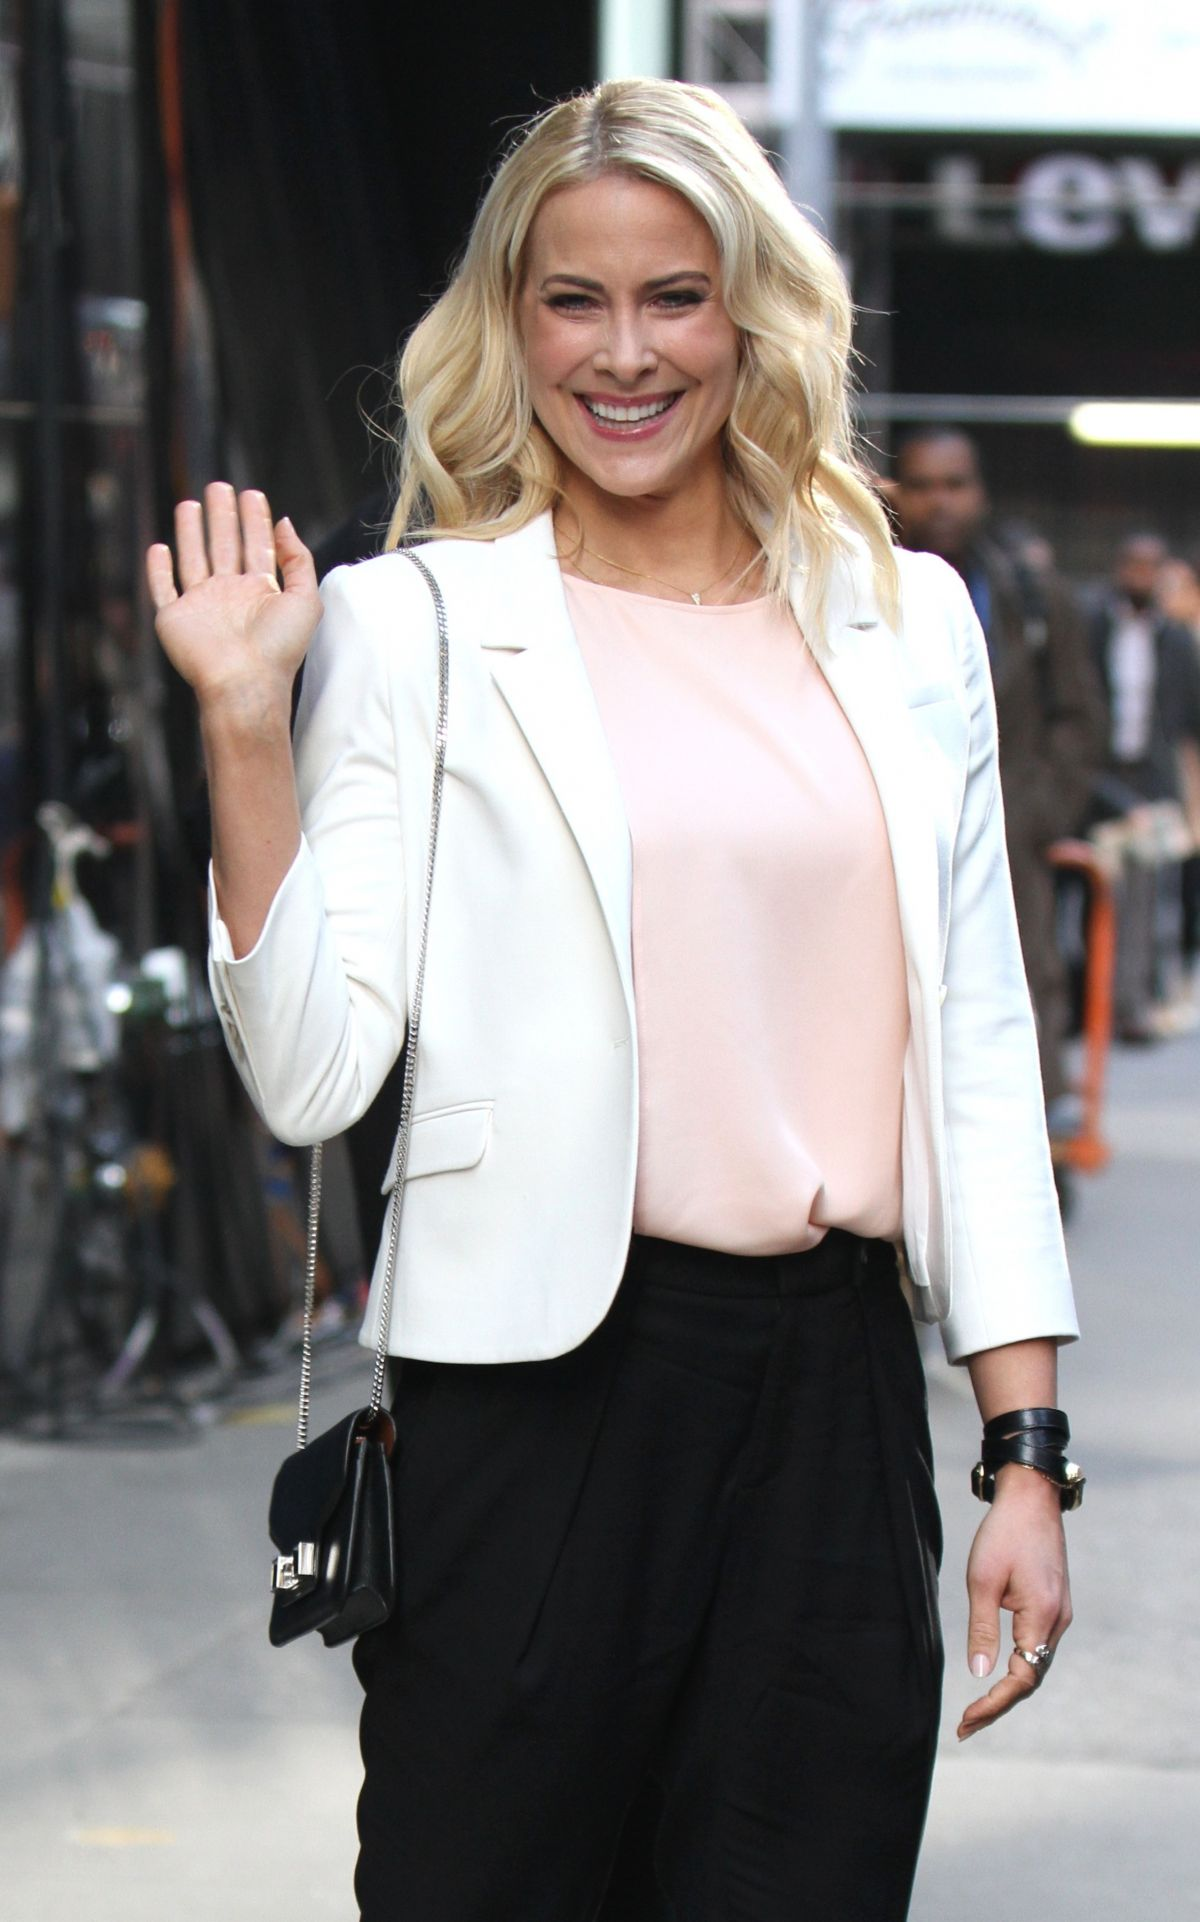 BRITTANY DANIEL at Good Morning America in New York